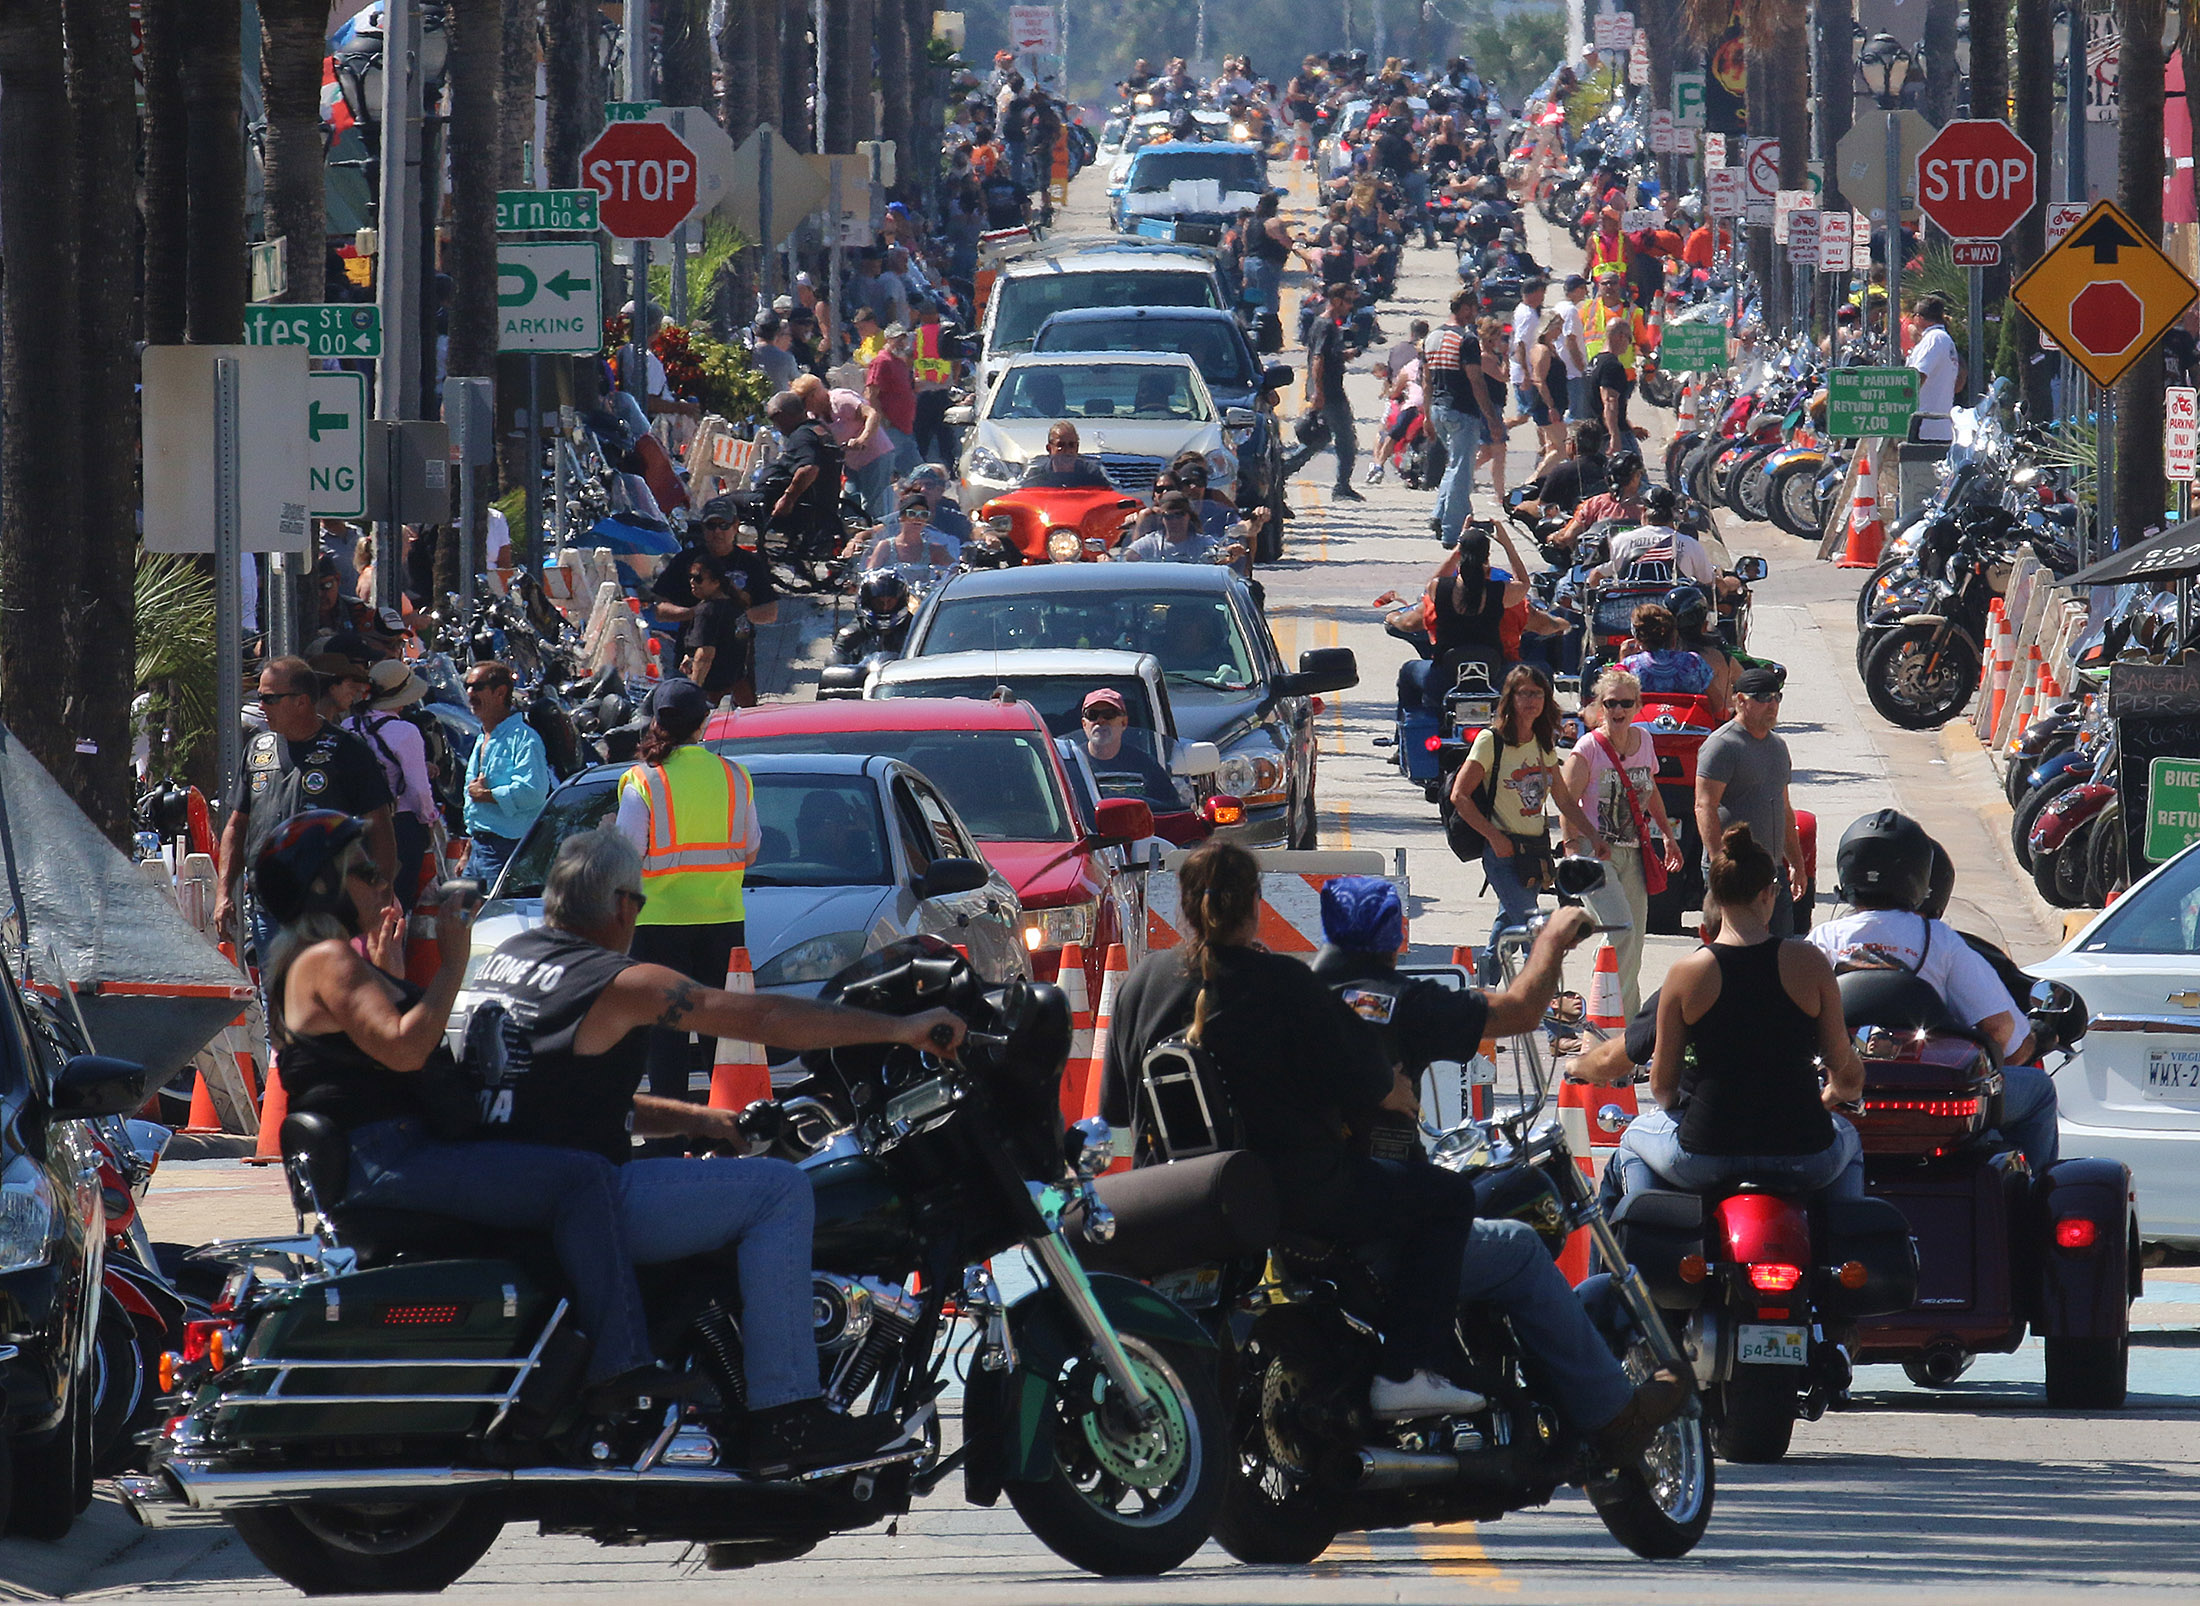 Images from day three of Biketoberfest 2015 on Main Street  in Daytona Beach Saturday  October 17, 2015. News-Journal/JIM TILLER